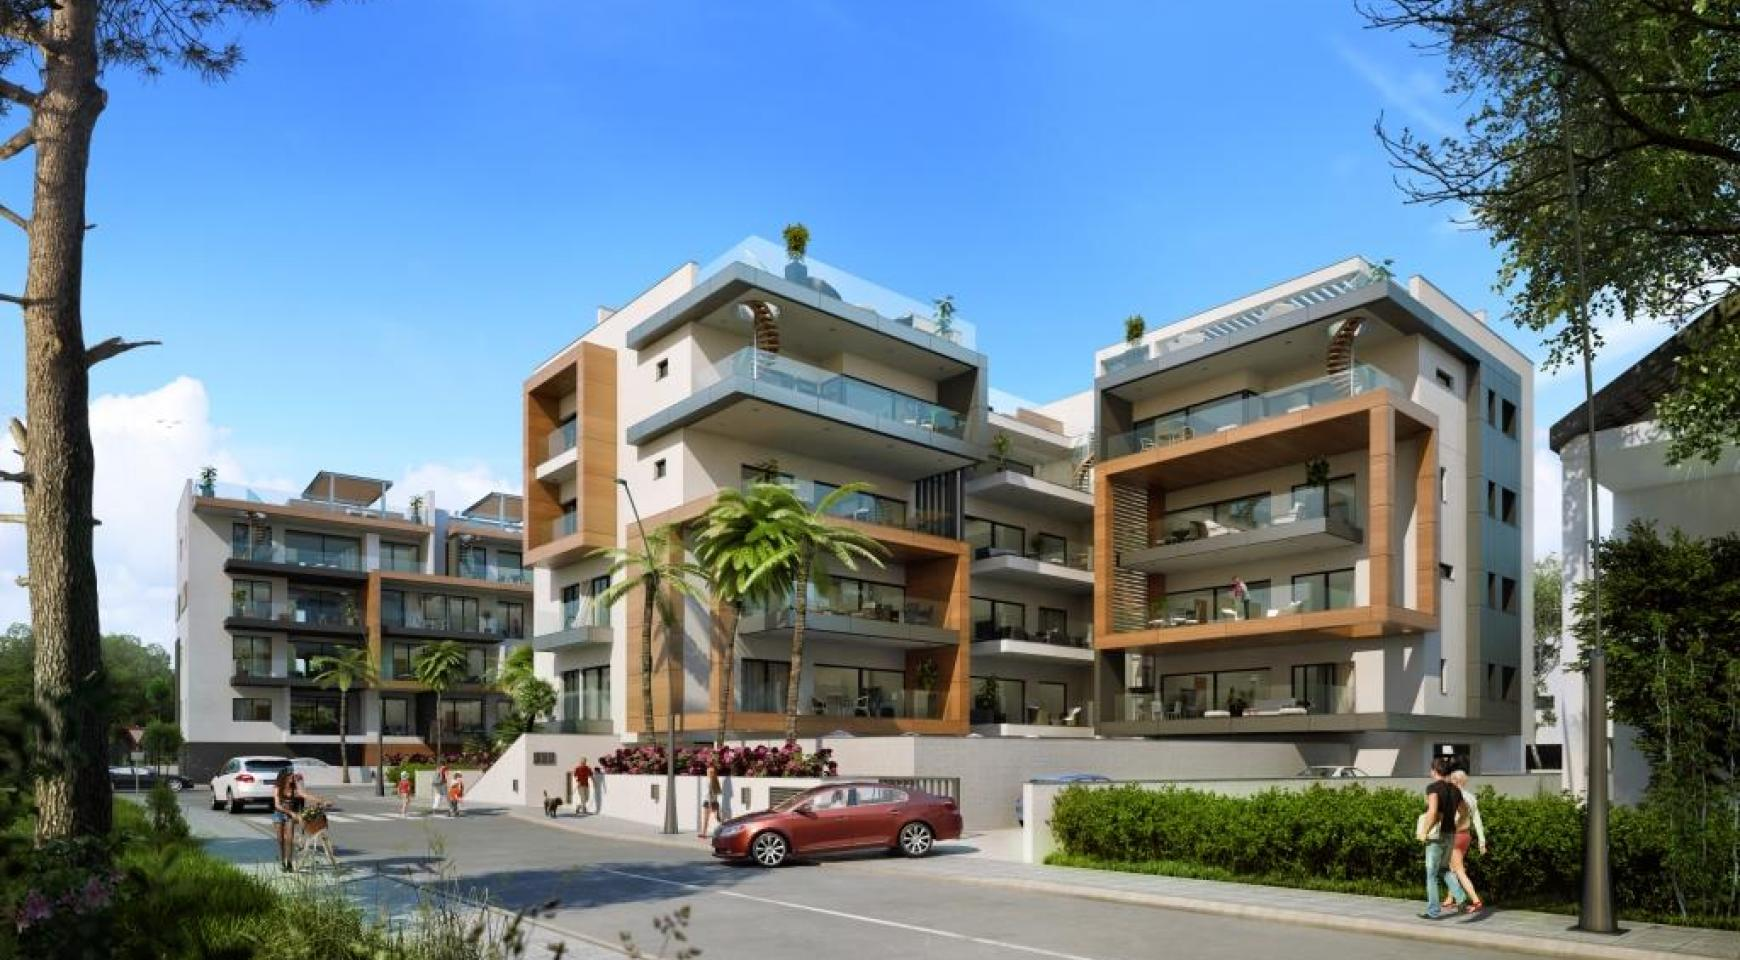 New Modern 3 Bedroom Apartment near the Sea - 2